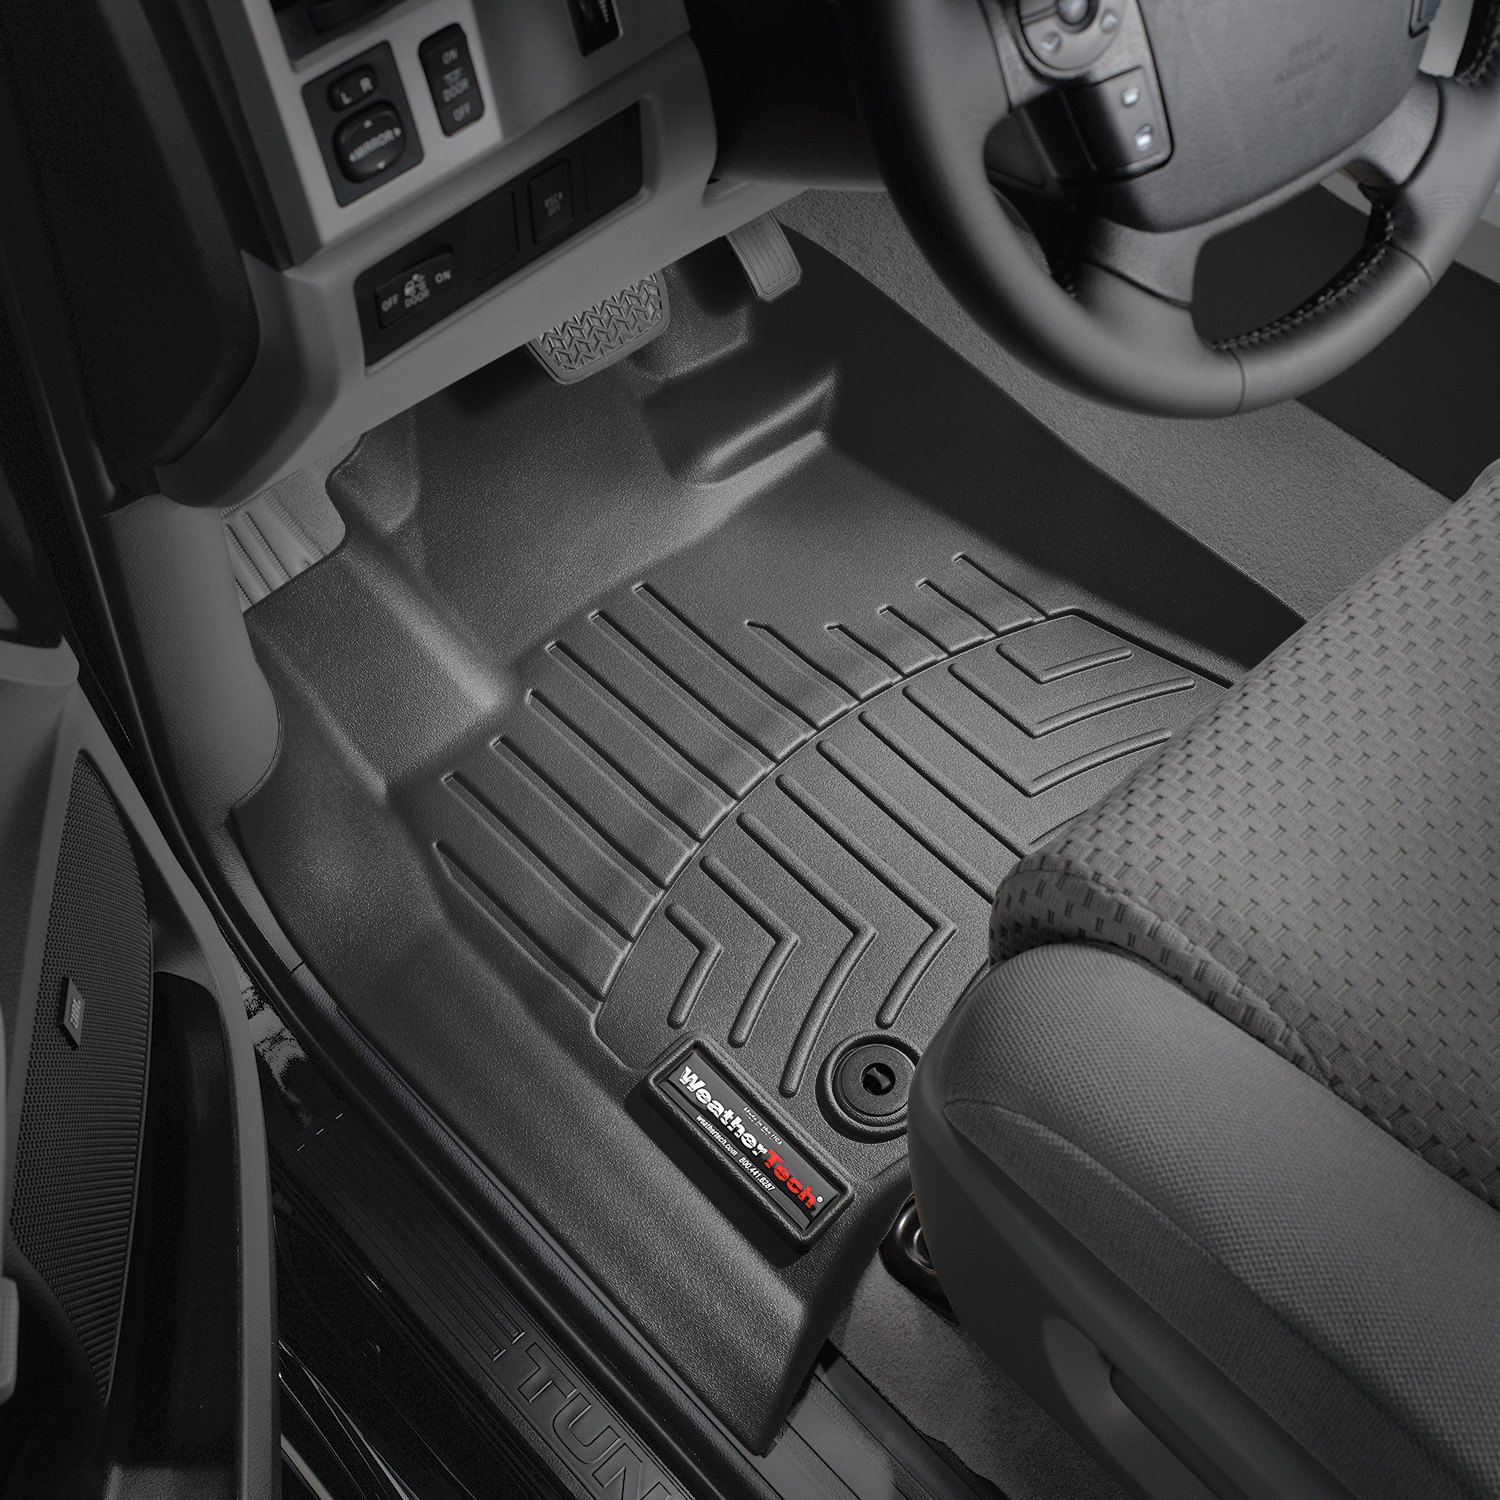 been performance unveils pro have mats paired new for floor tundra increased trd with refresh up lineup revealed features safety entire toyota signaling where its sport enhancements has